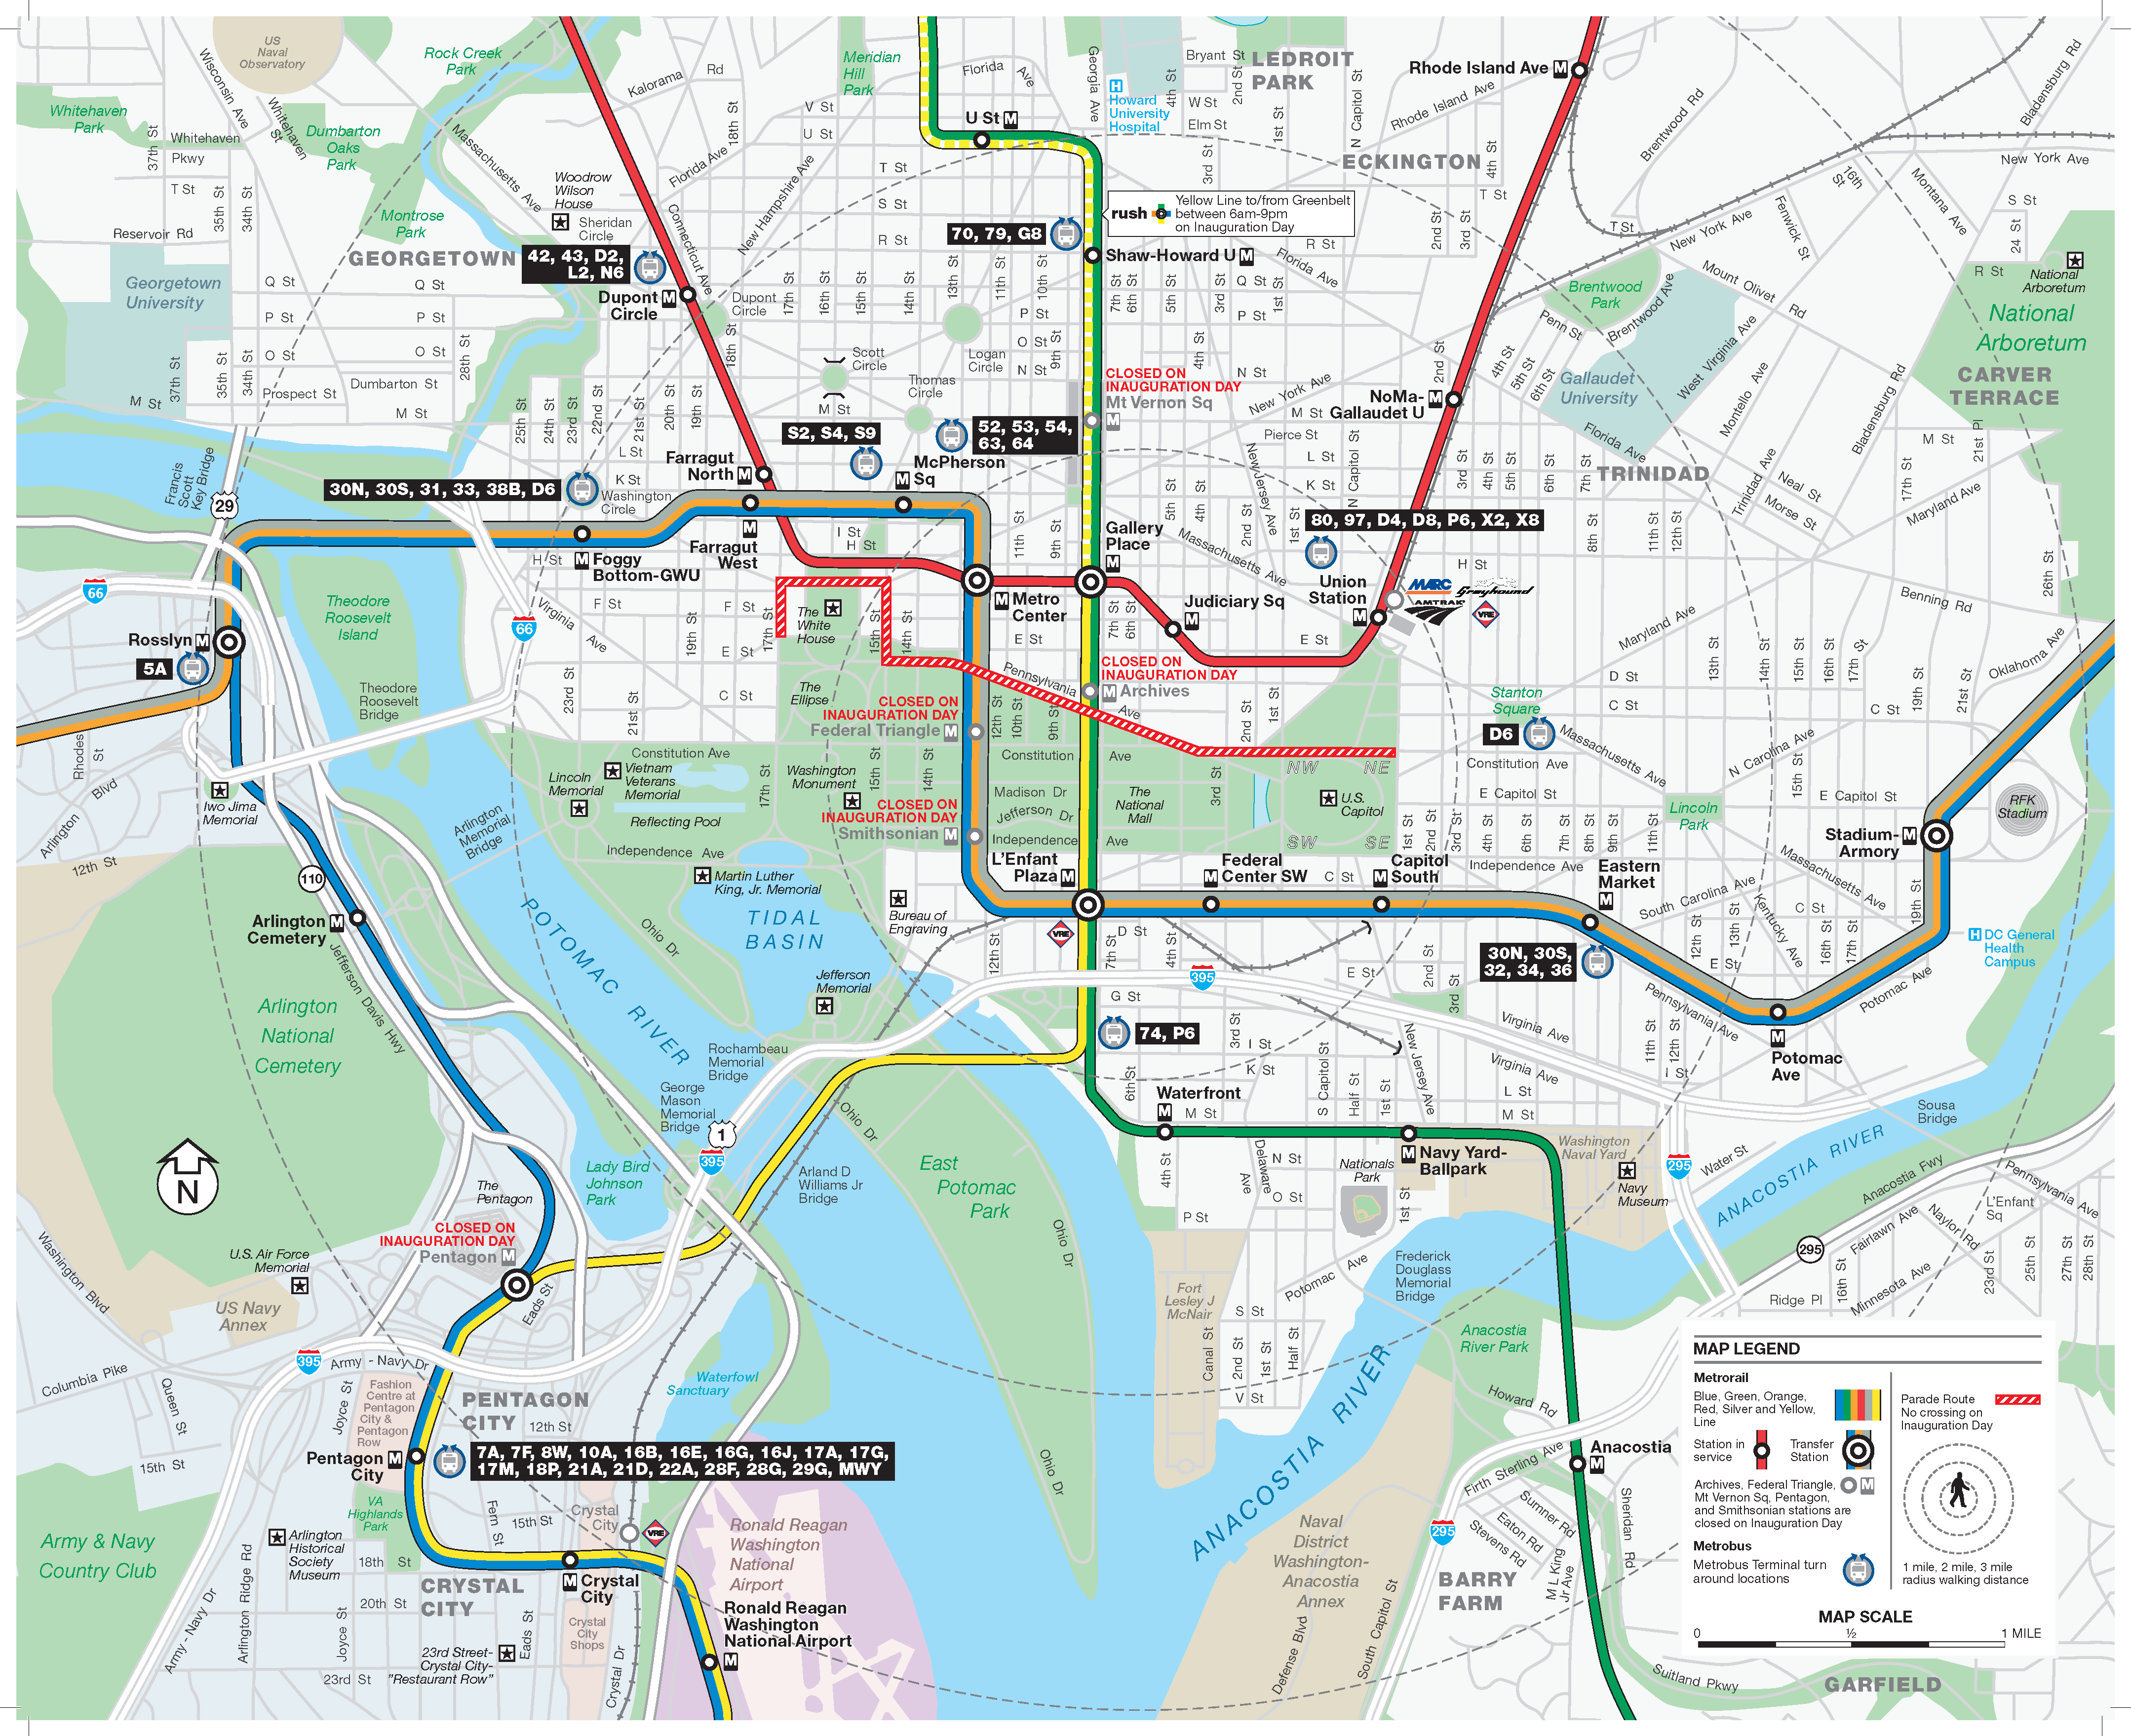 Inauguration Street Map w/ Metrobus